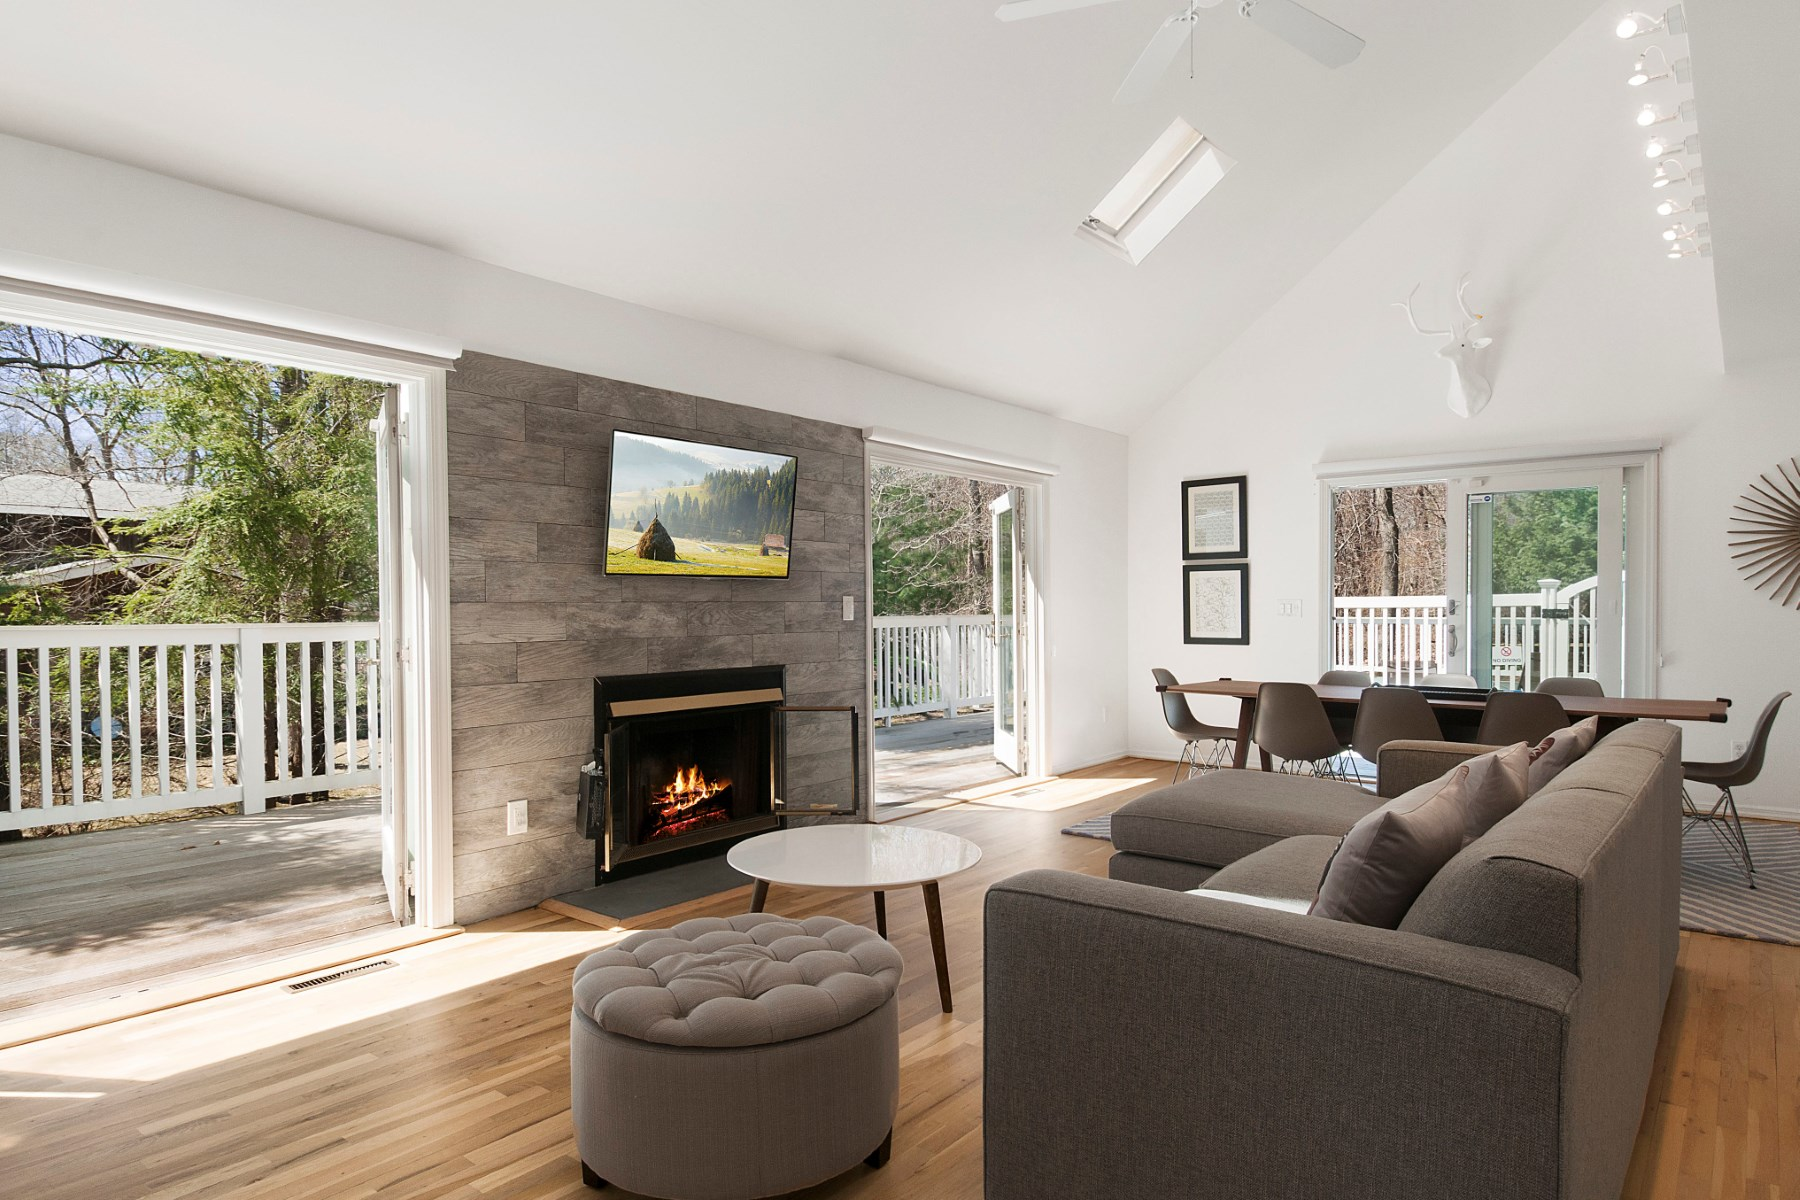 Single Family Home for Sale at Sleek Contemporary with Bay Breezes 31 Milina Drive East Hampton, New York 11937 United States